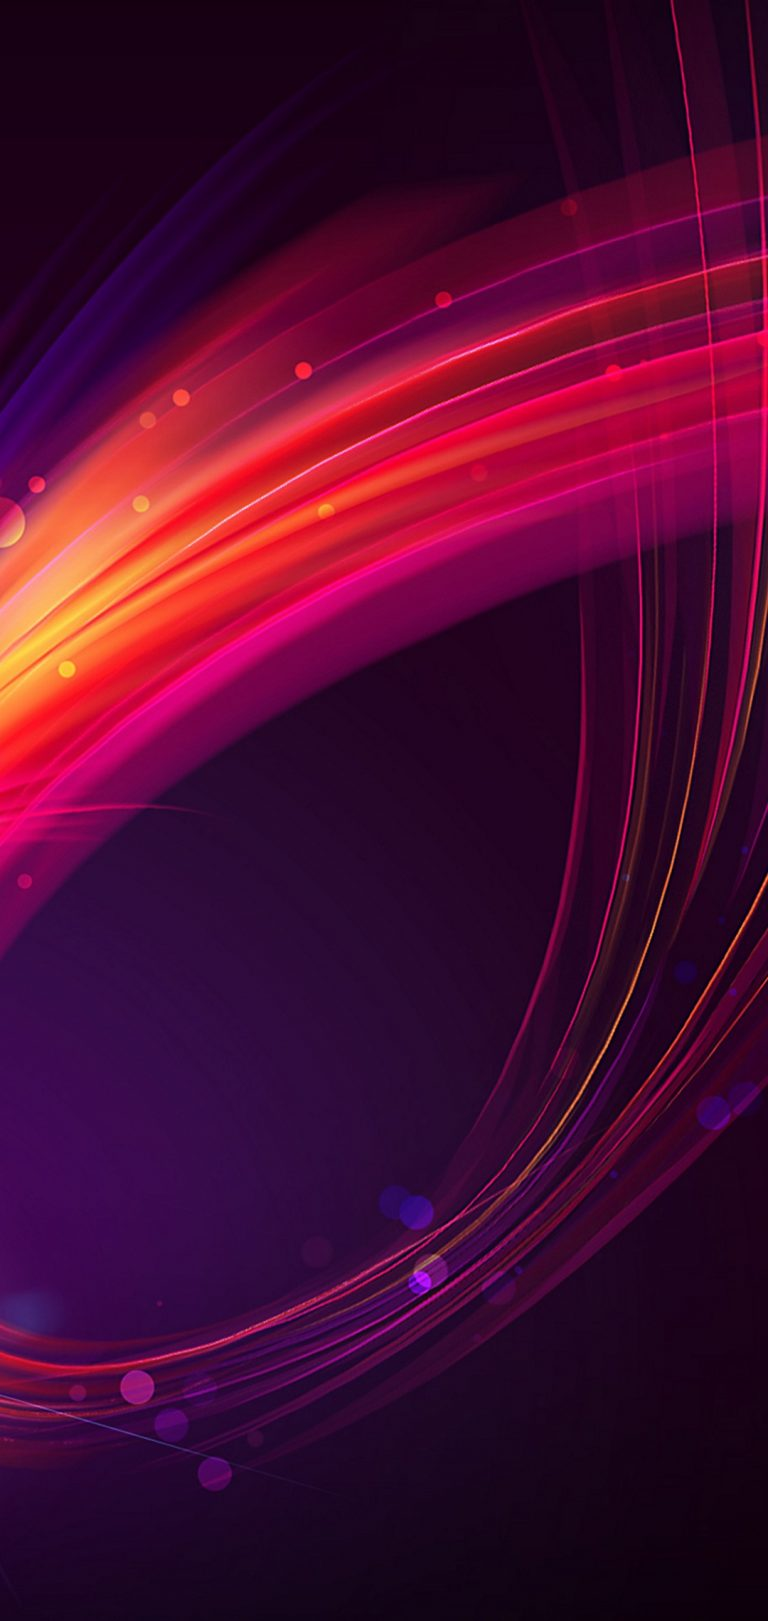 Abstract Wave Wallpaper 1080x2280 768x1621